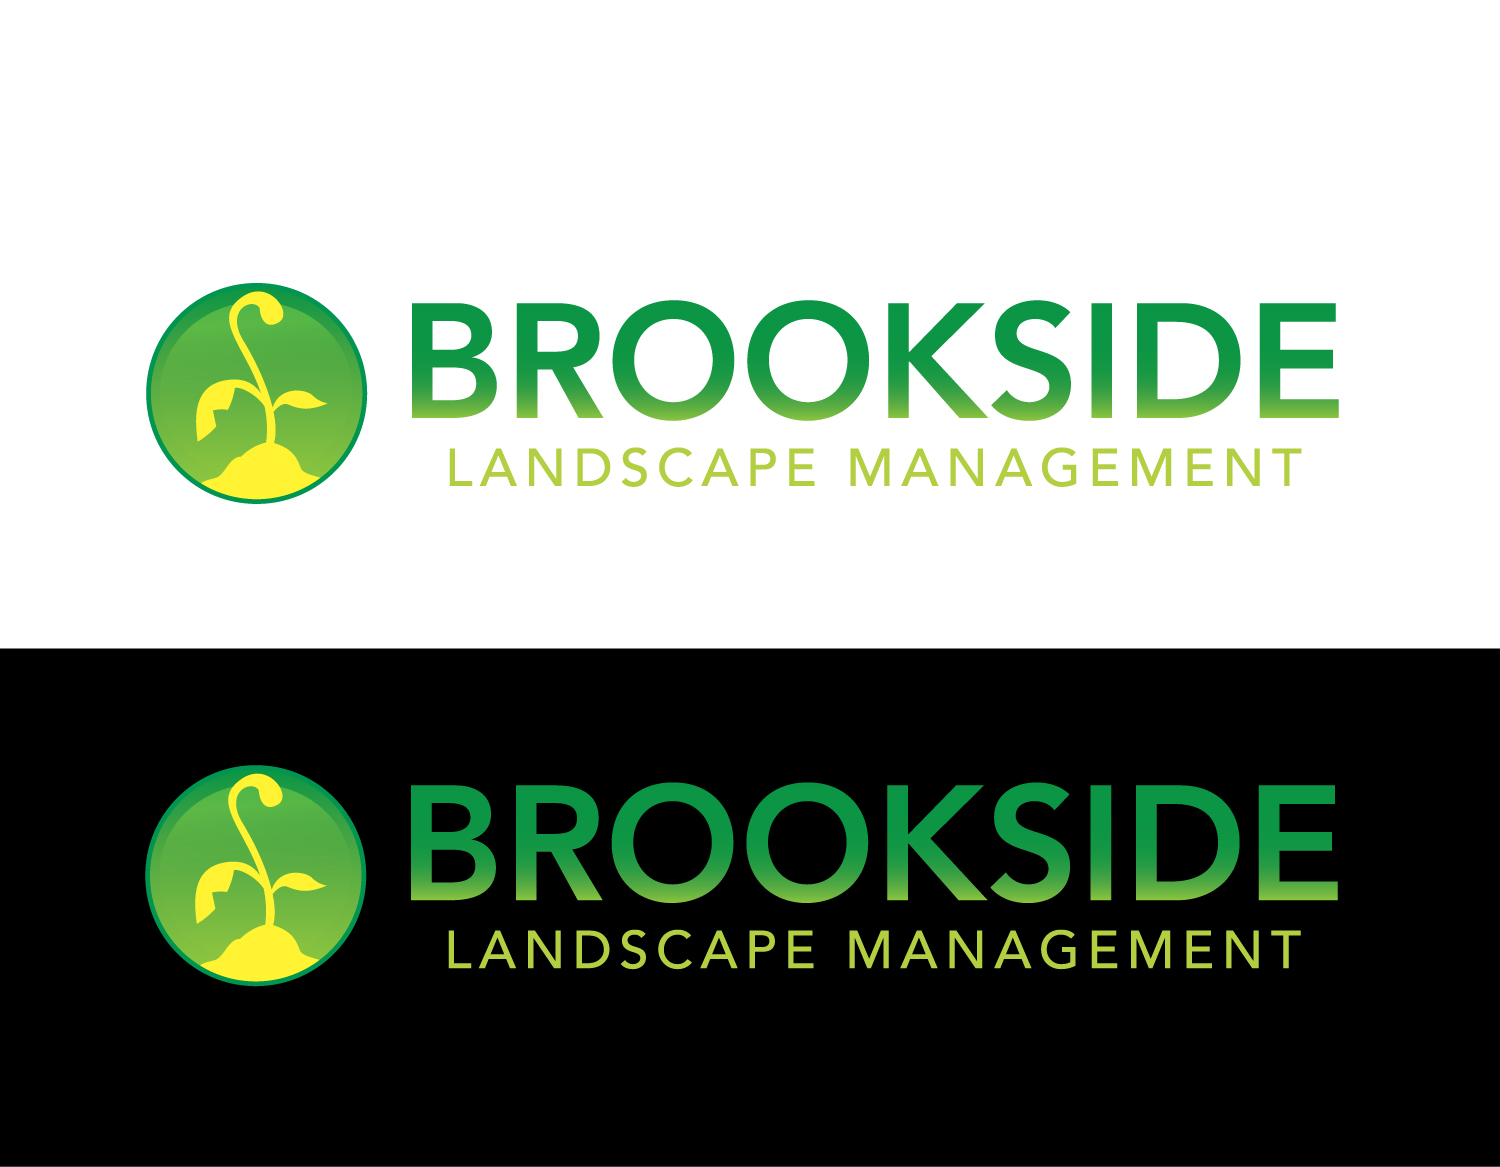 Logo Design by rA - Entry No. 67 in the Logo Design Contest New Logo Design for Brookside Landscape Management.